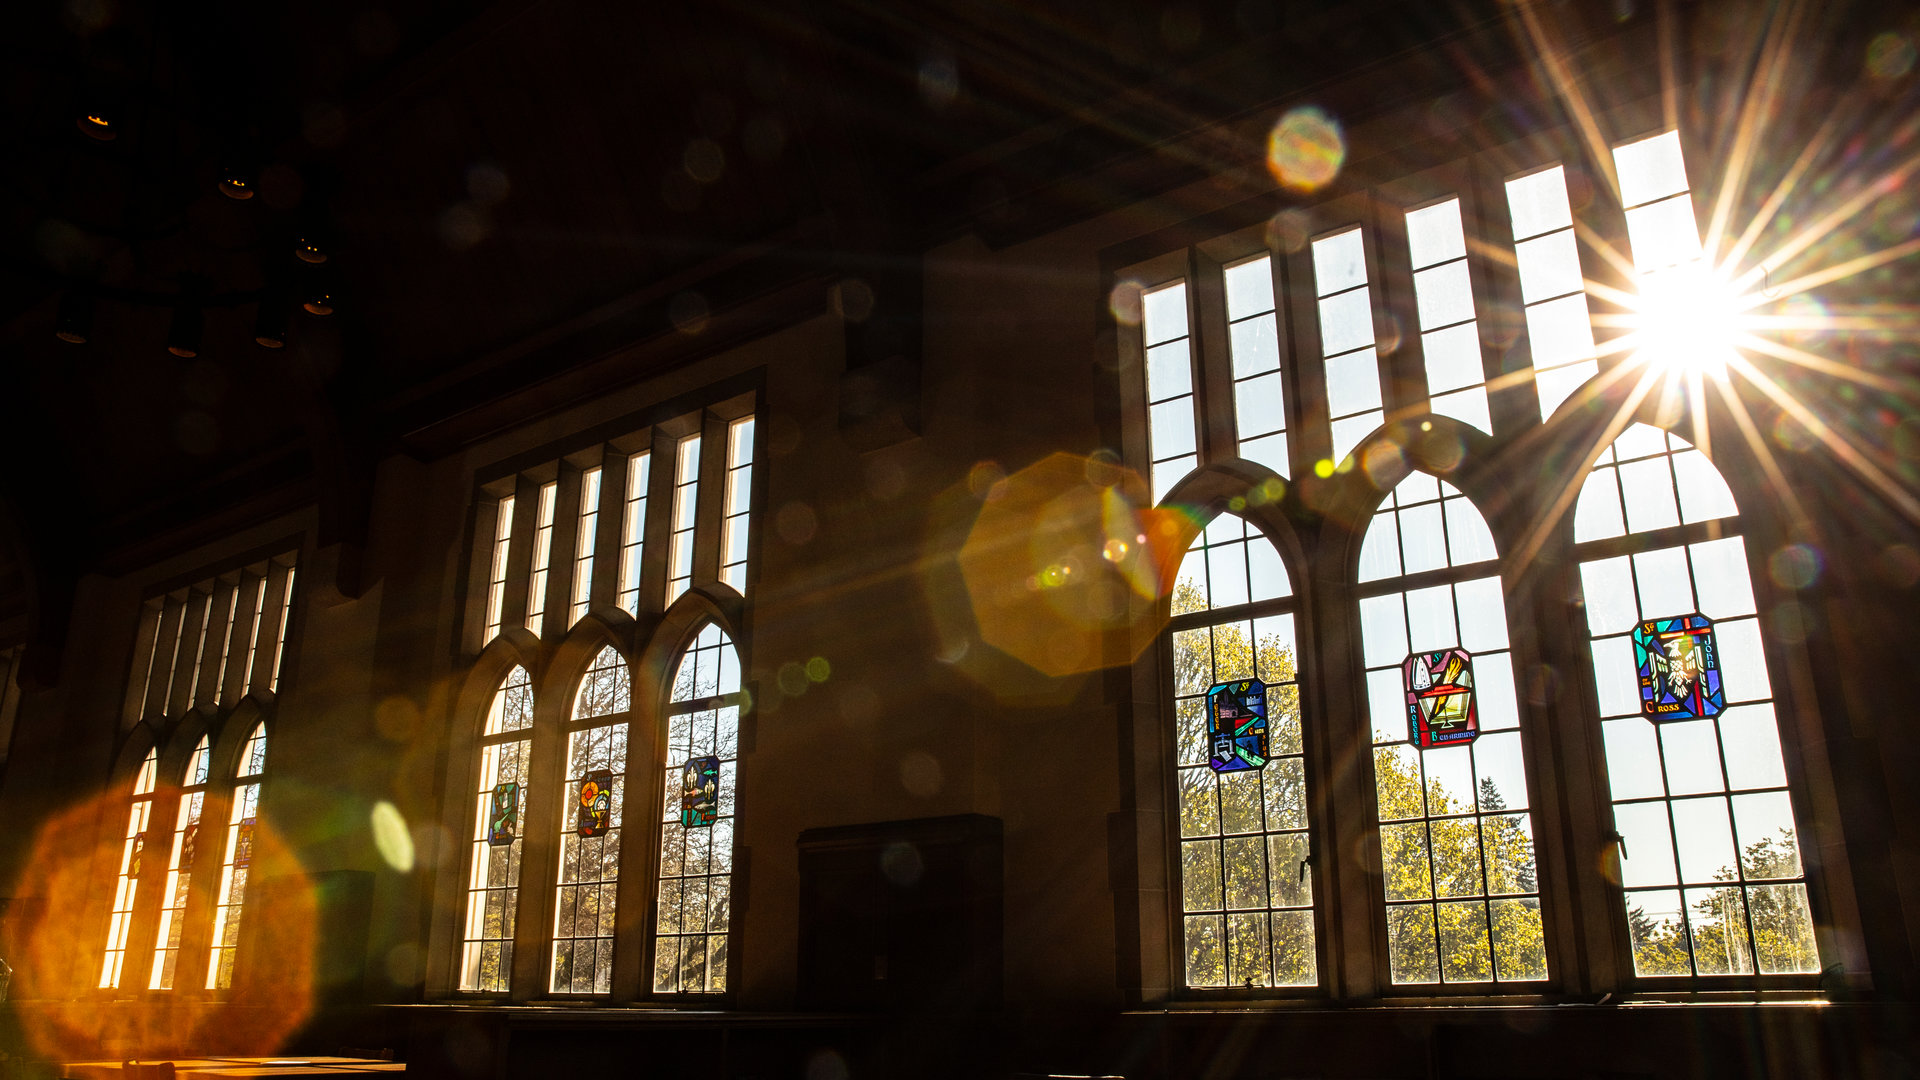 sun shines into windows in the O'Shaughnessey Frey library leather room